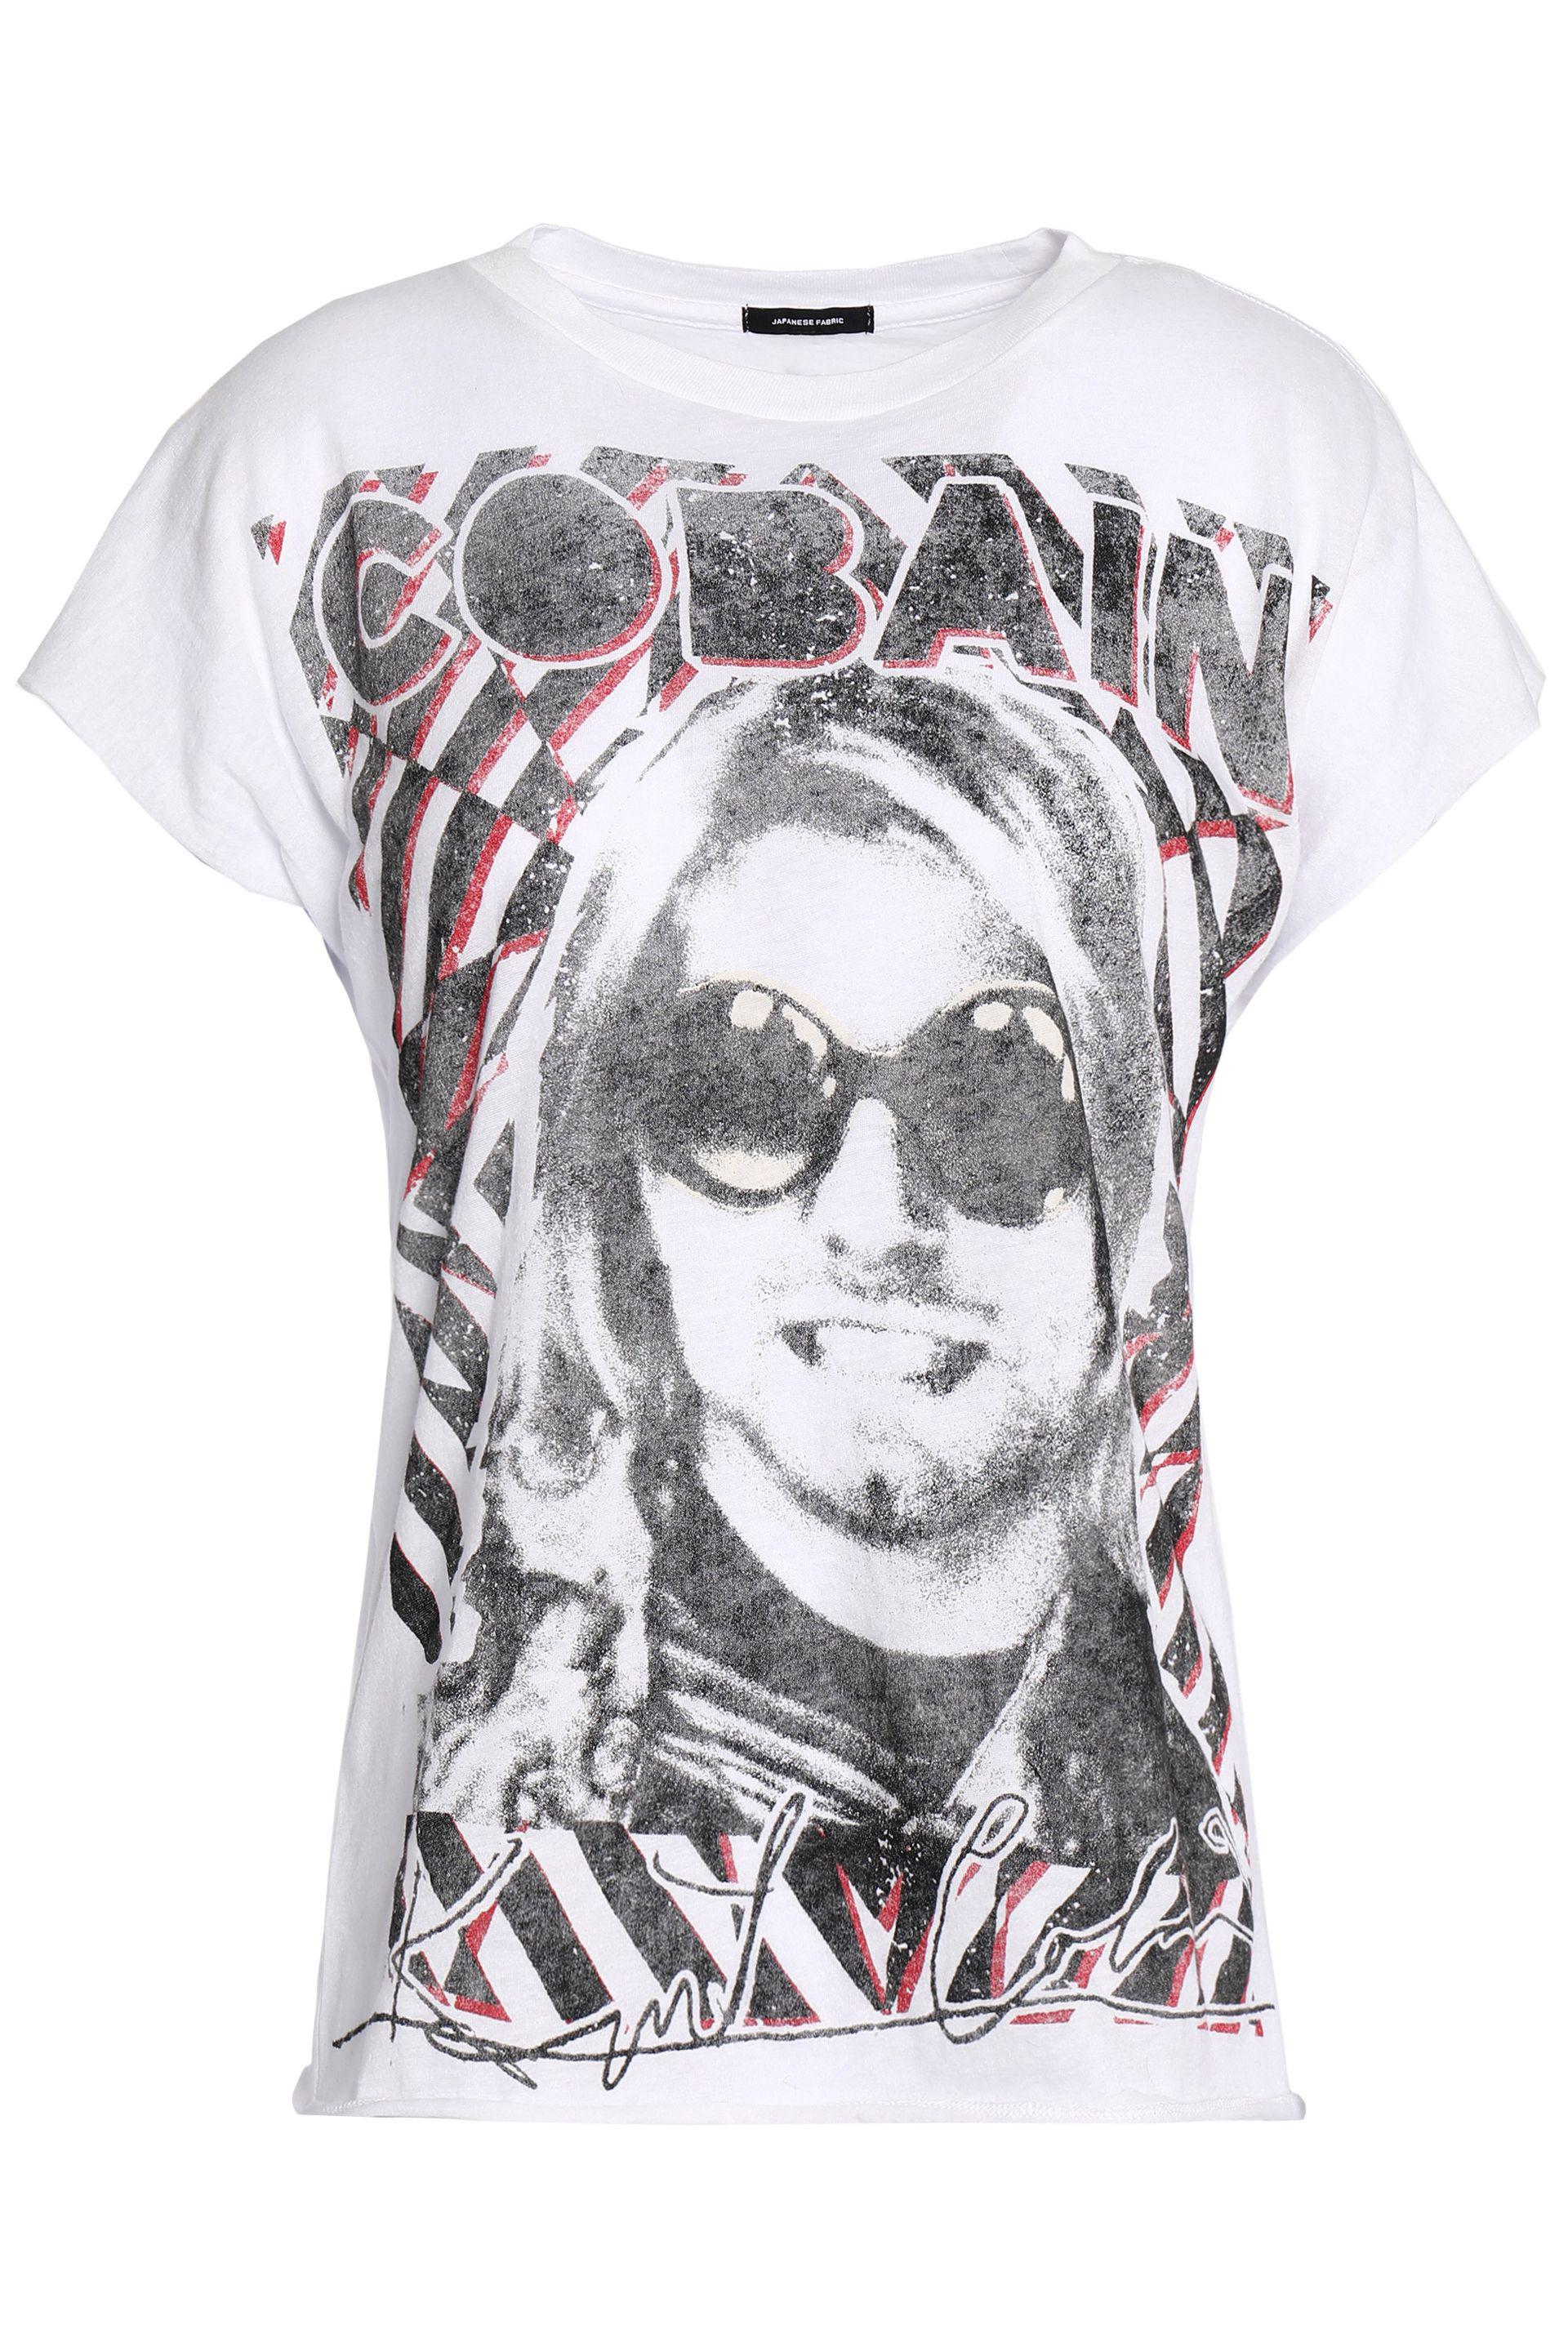 Woman Printed Cotton And Cashmere-blend T-shirt White Size M R13 Cheap Sale Cost abmUVgpf